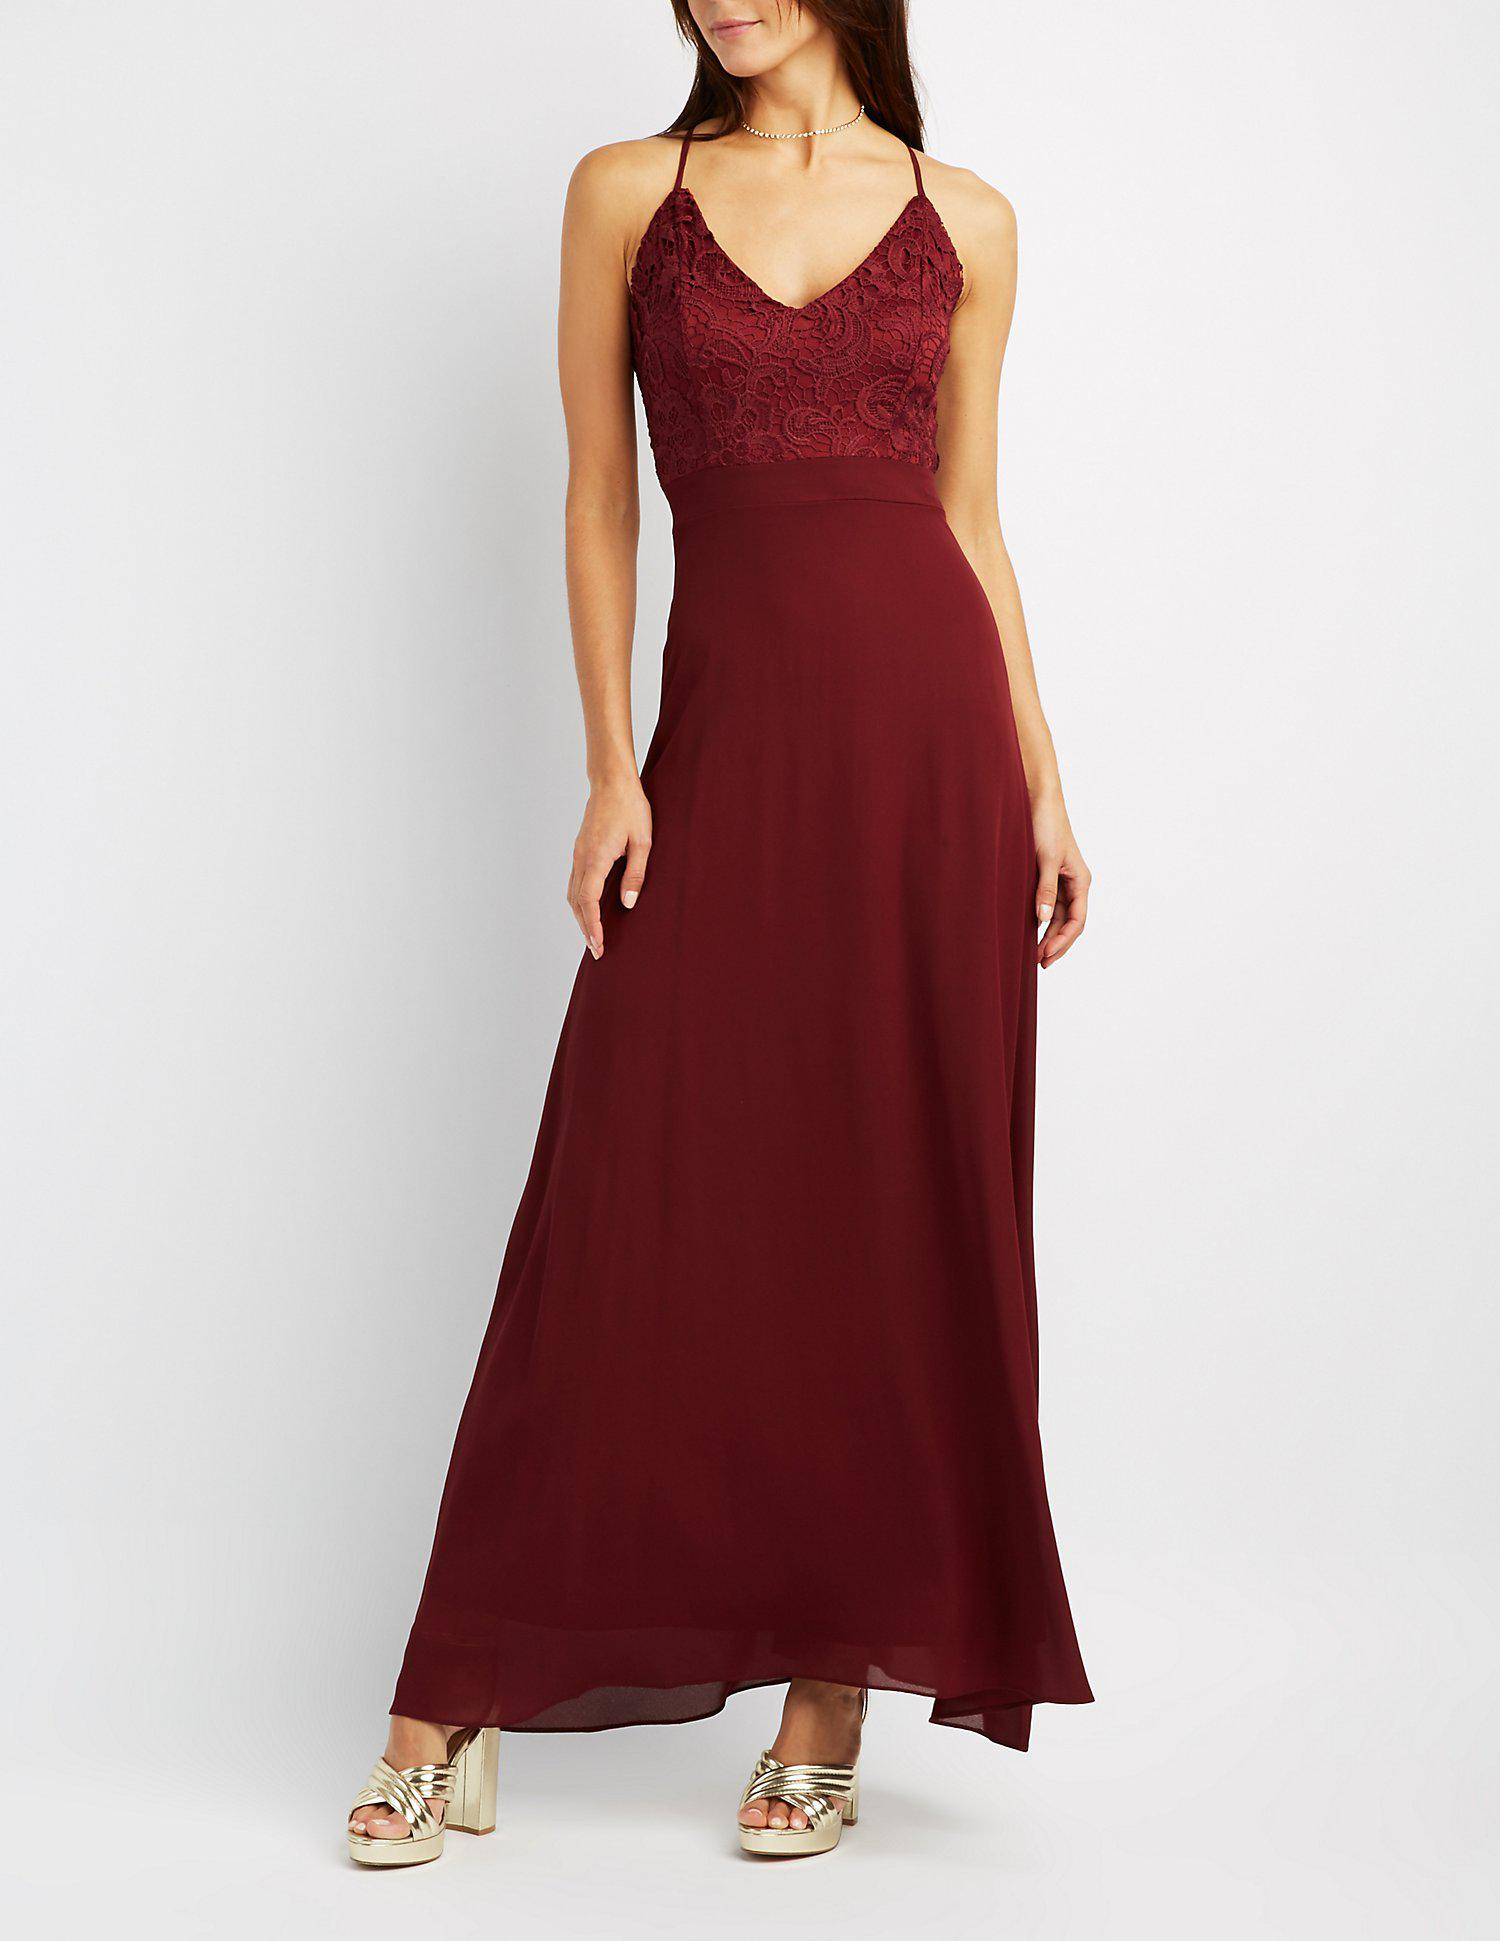 bde1a3a21e7 Lyst - Charlotte Russe Lace   Chiffon Strappy Maxi Dress in Red